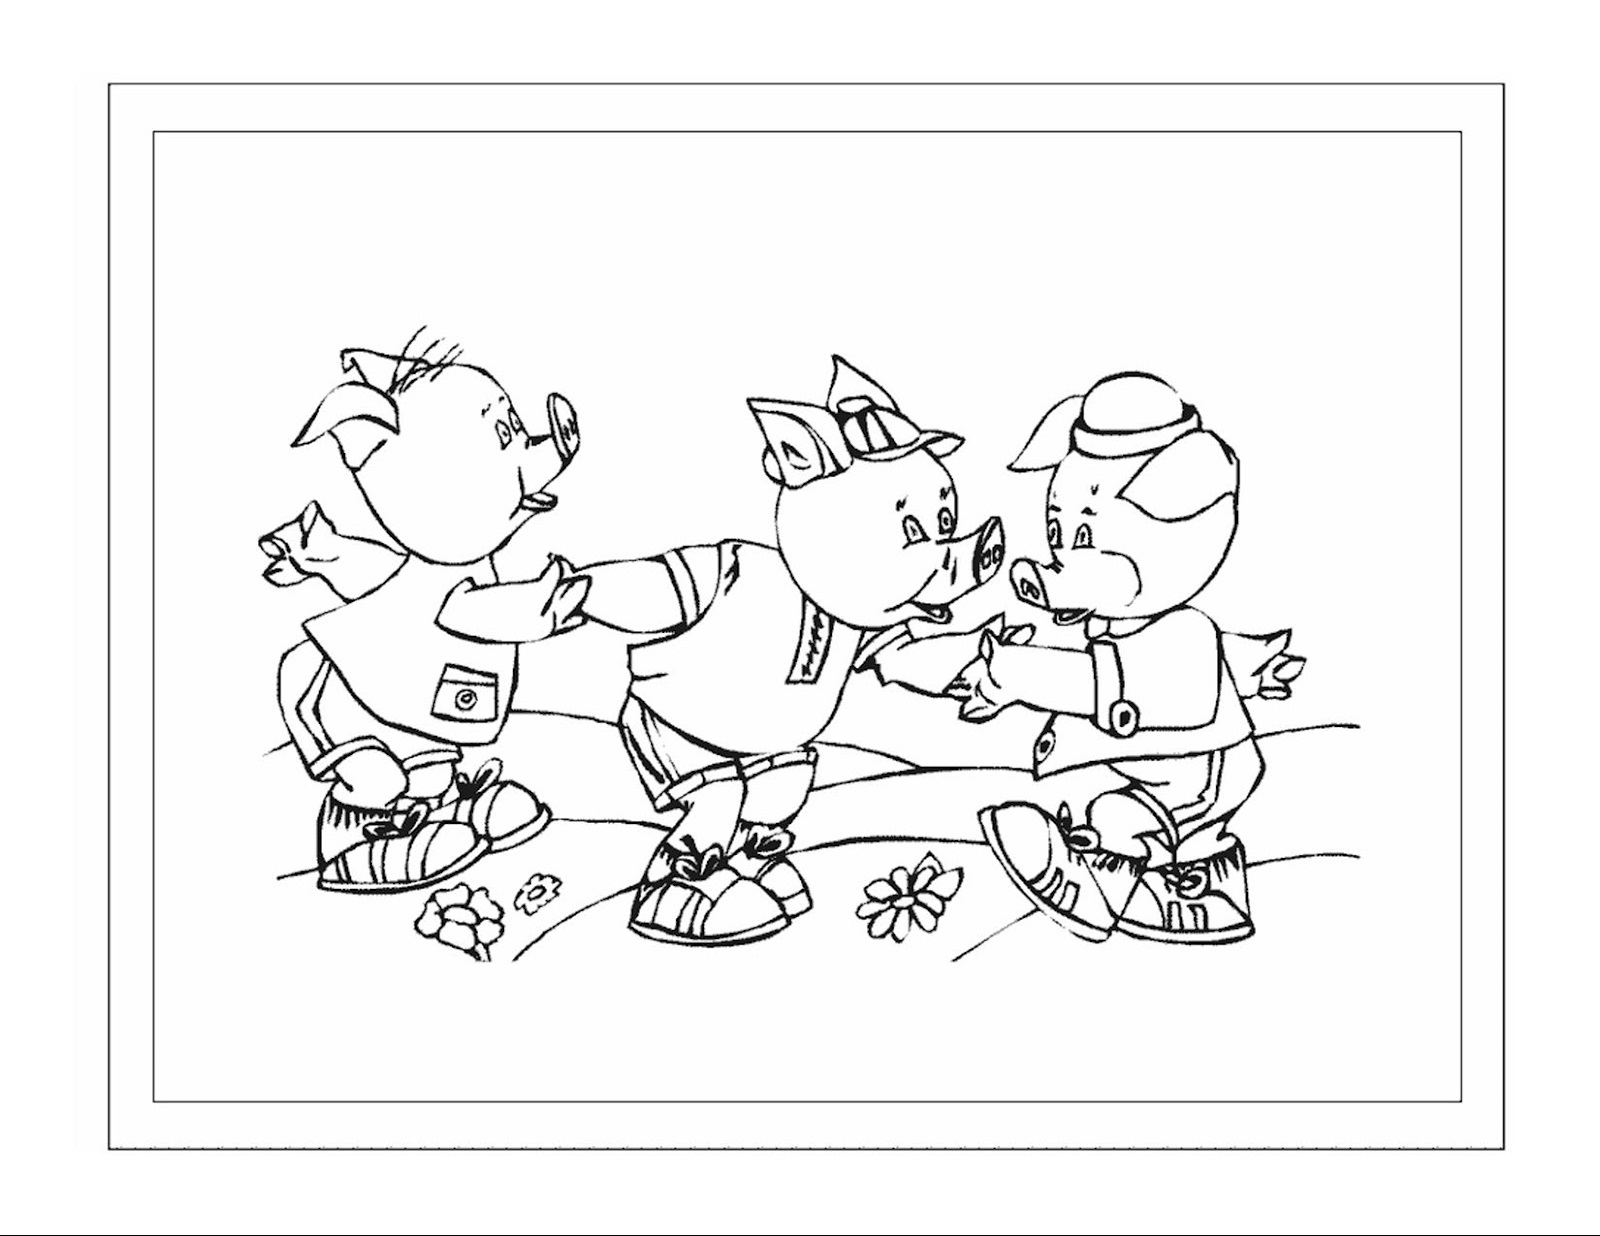 3 Little Pigs Coloring Pages For Preschoolers Activity